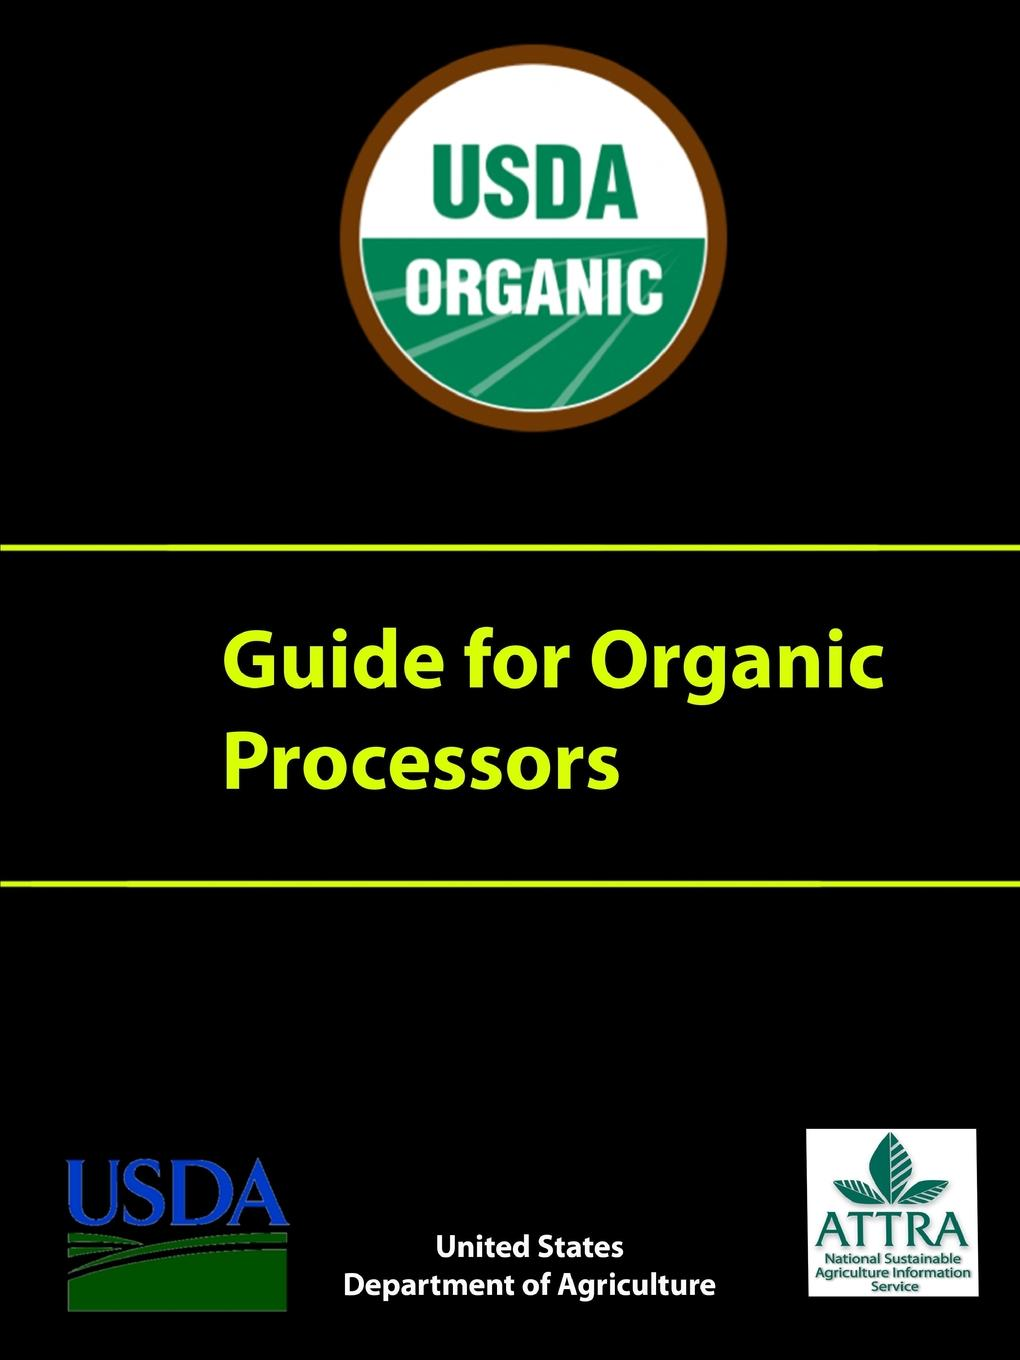 U.S. Department of Agriculture Guide for Organic Processors